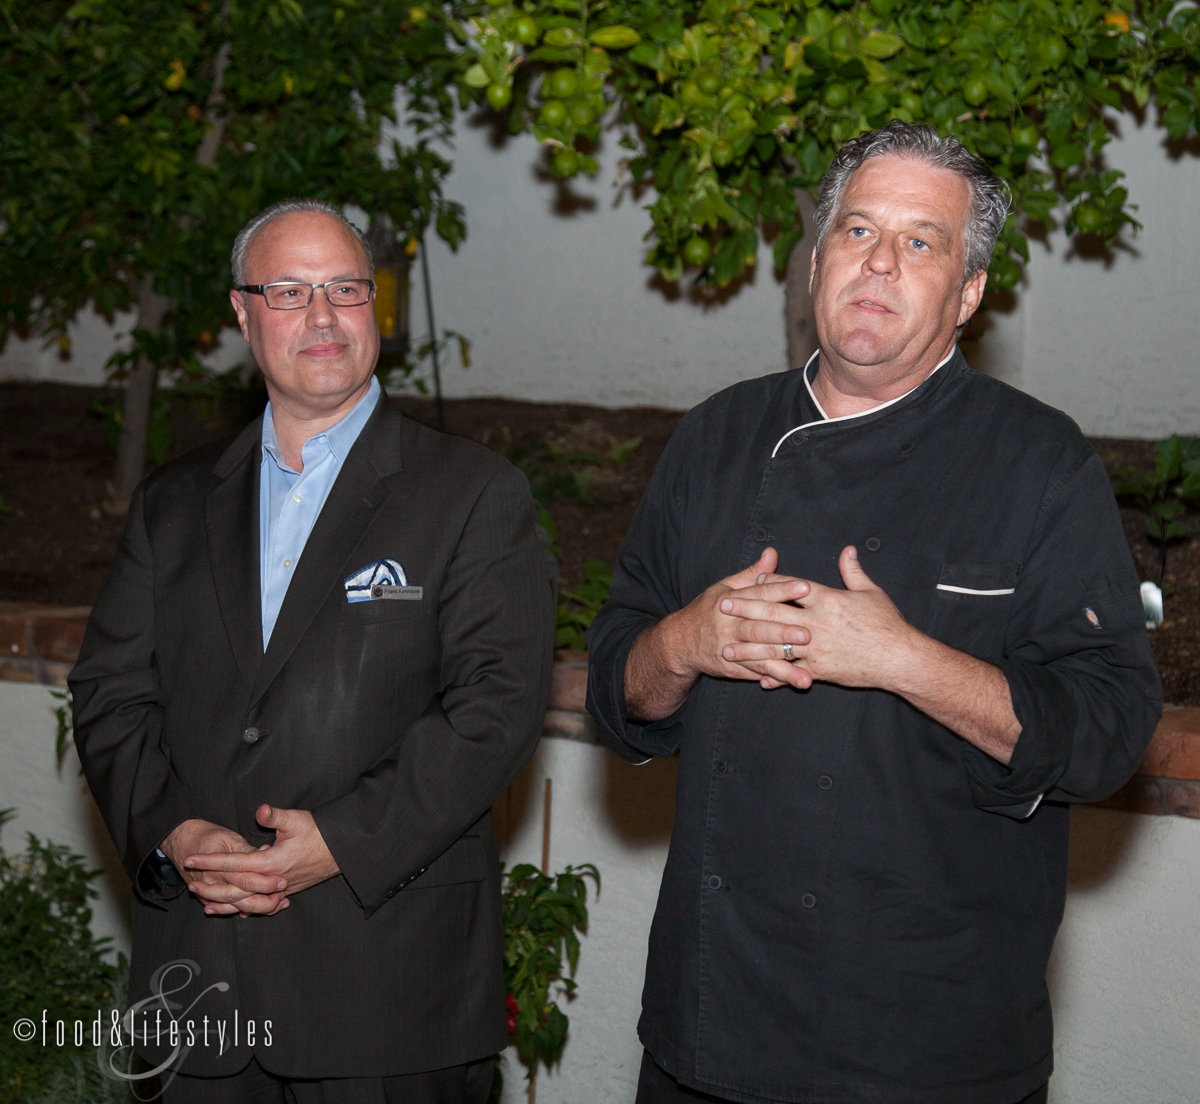 General Manager Frank Ashmore and Executive Chef Michael Cairns